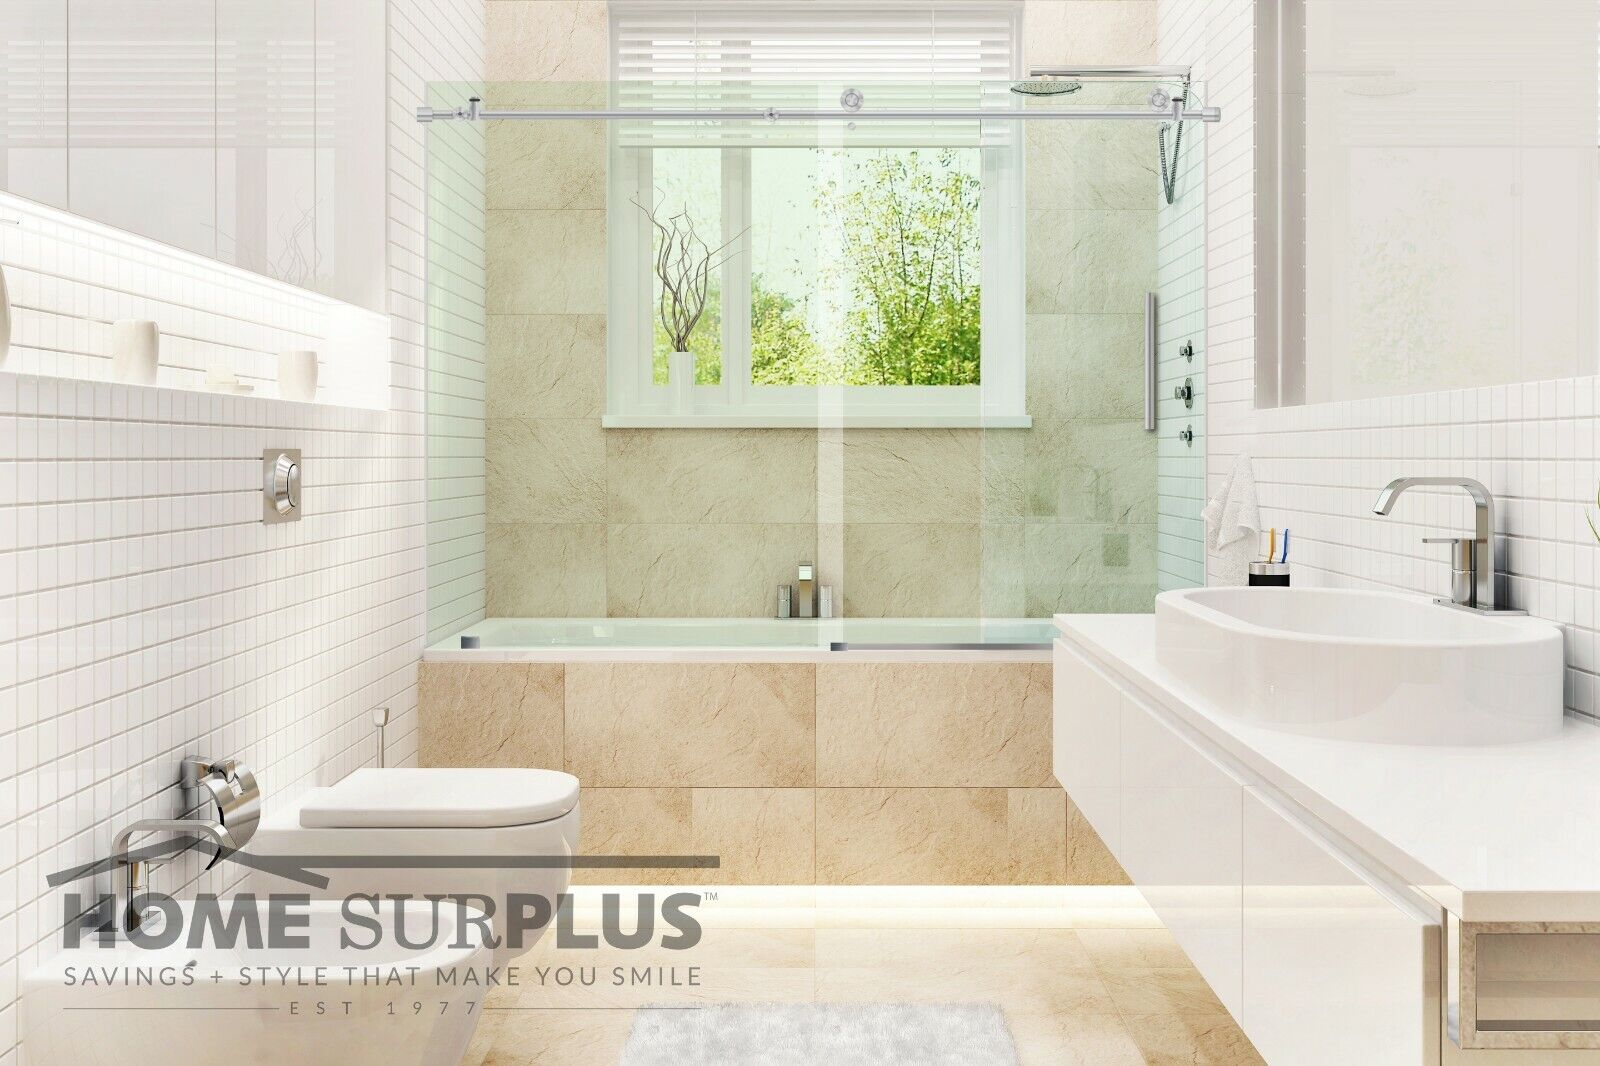 Single Sliding Glass Shower Tub Door Frameless 56 60 W 62 H Chrome Harware